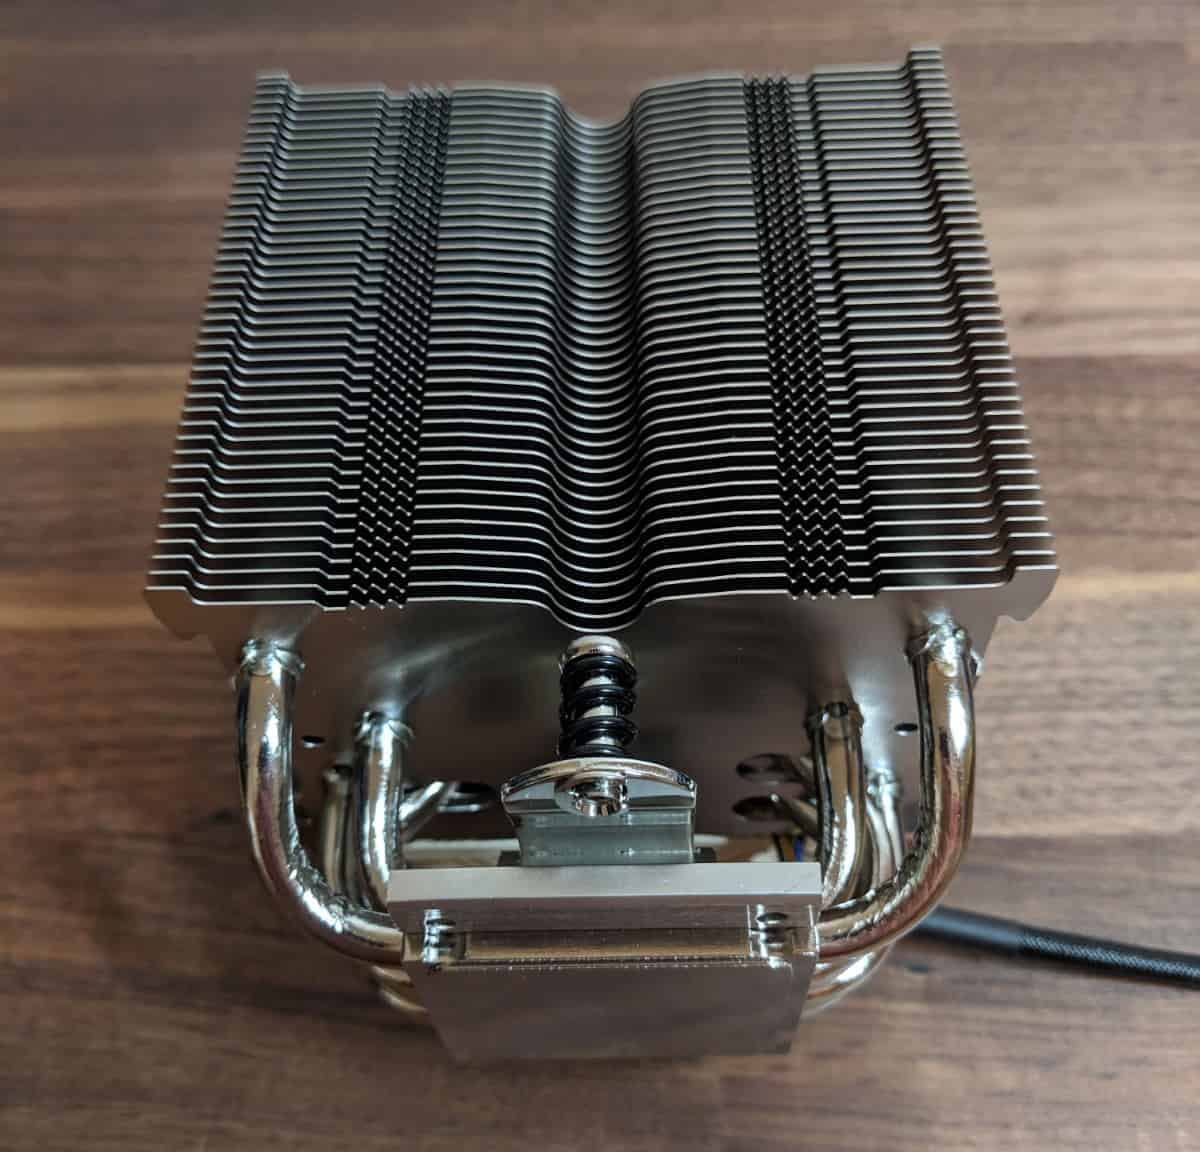 Noctua-U9S-Photos-06 Noctua U9S Review